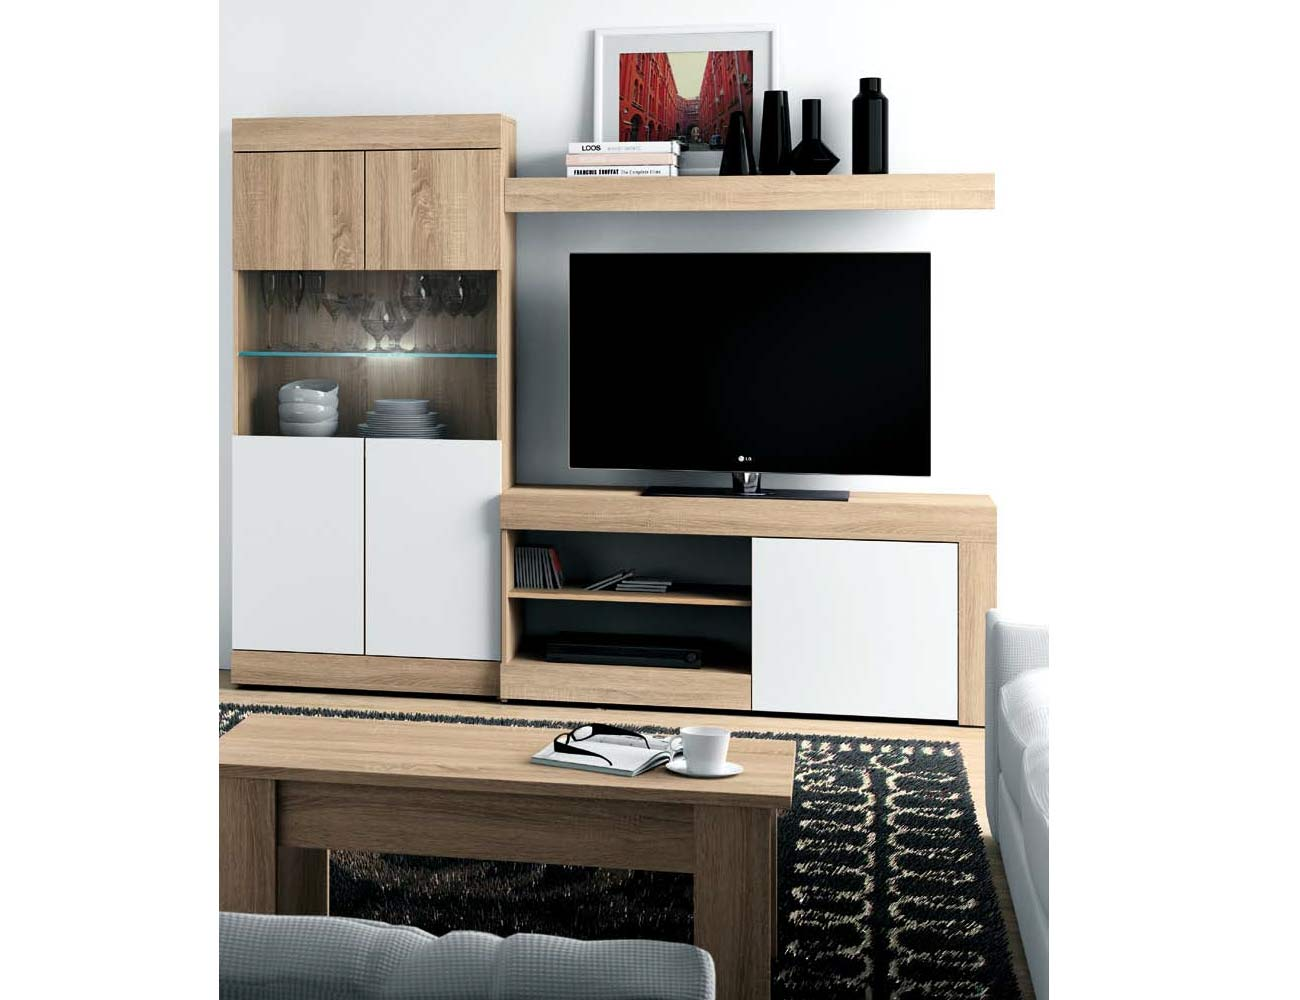 Mueble salon moderno leds cambrian blanco ambiente 21